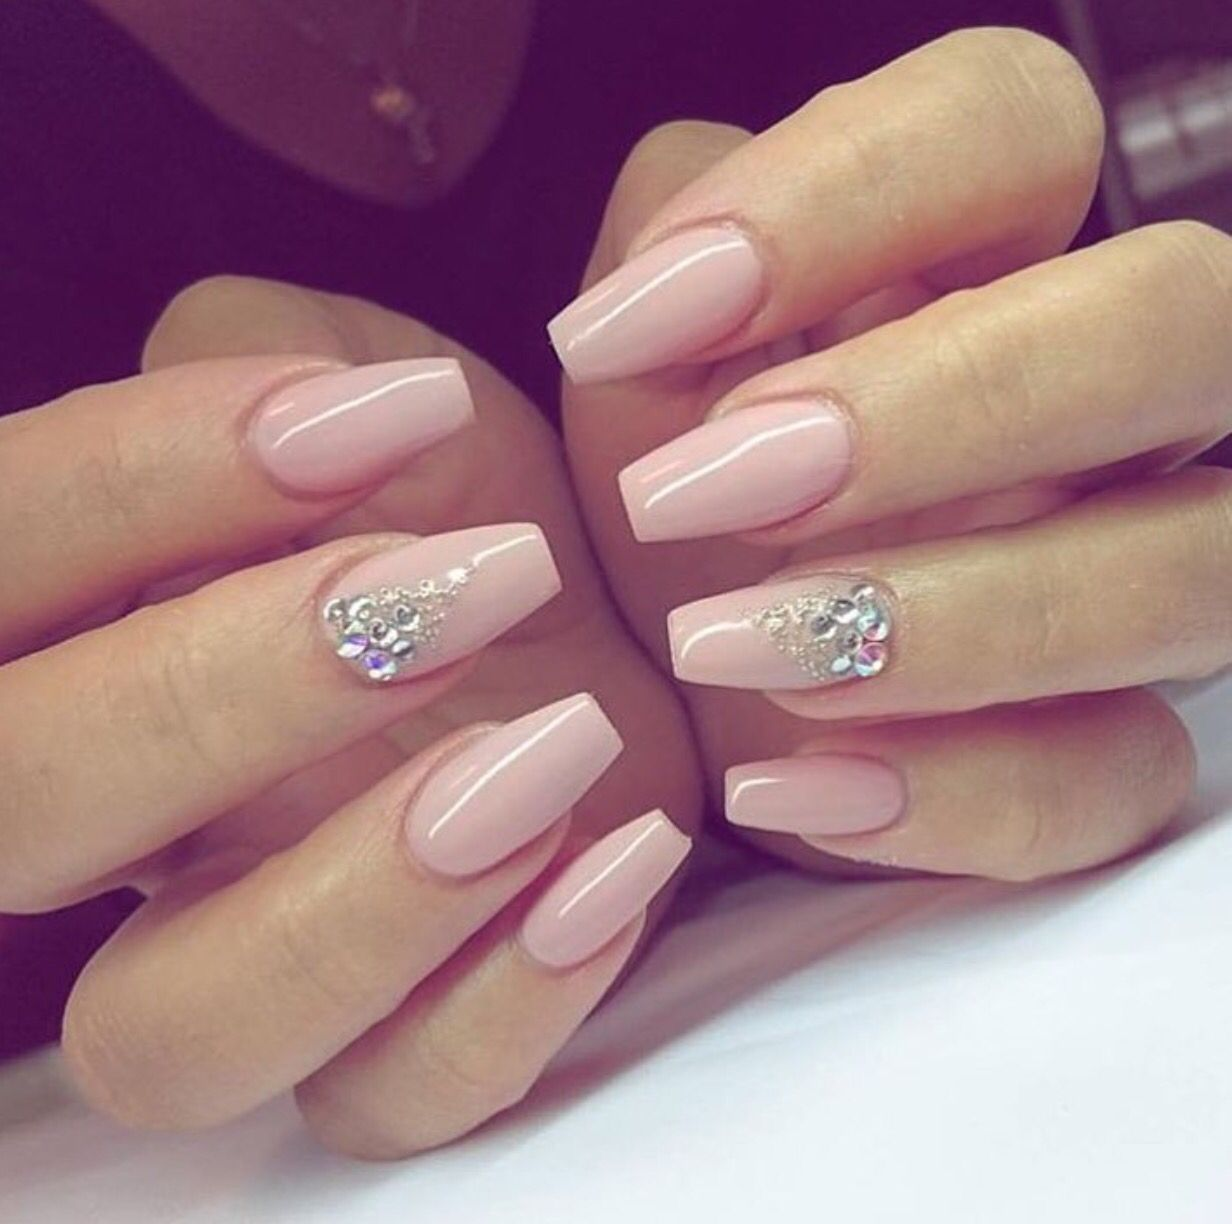 2,556 Likes, 6 Comments - Маникюр / Ногти / Мастера (@nail